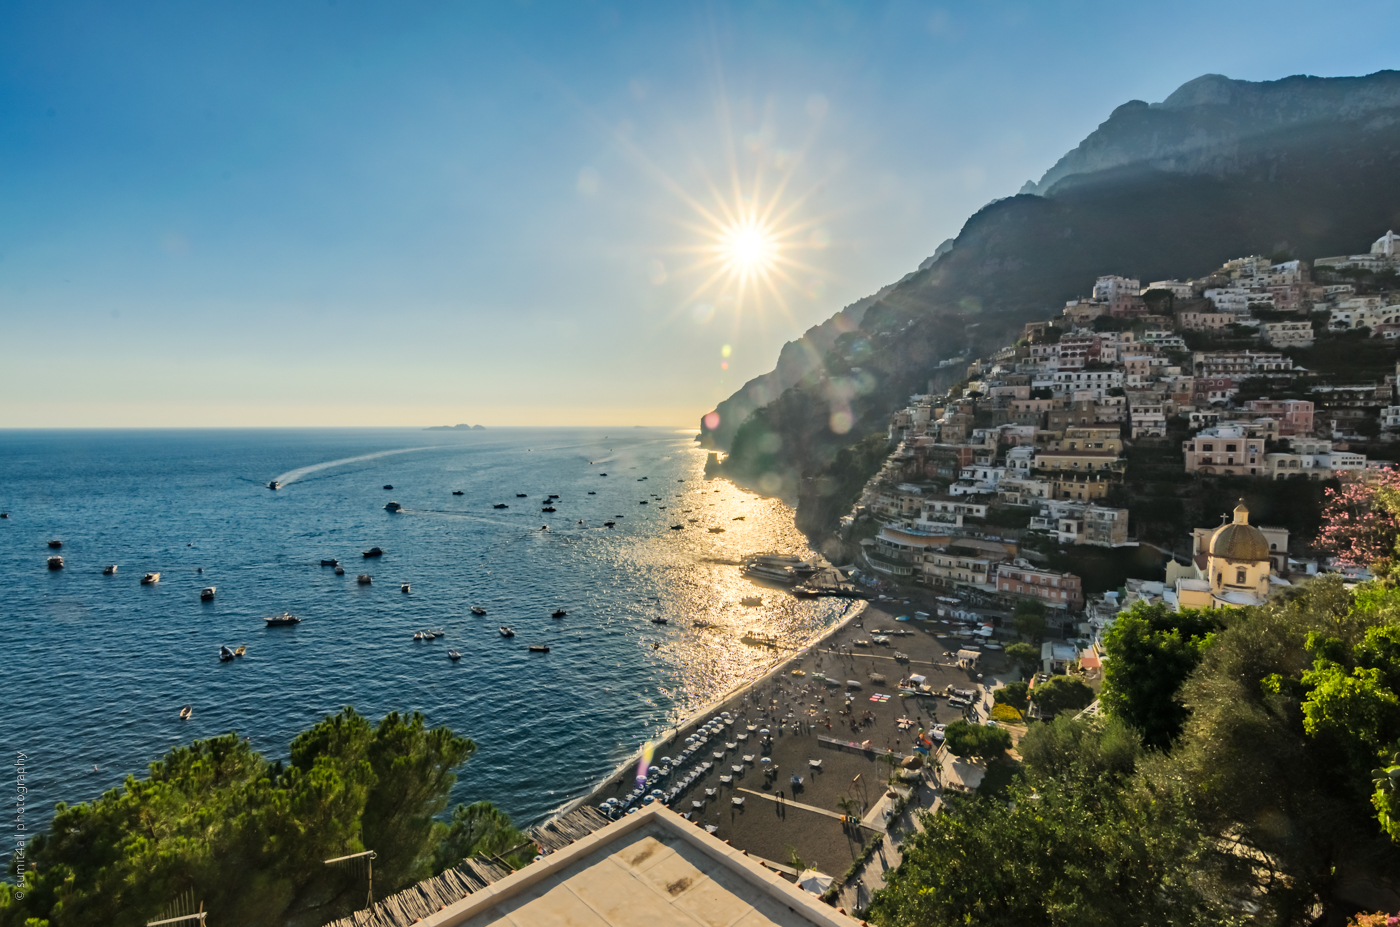 Just before sunset in Positano on the Amalfi Coast, Italy